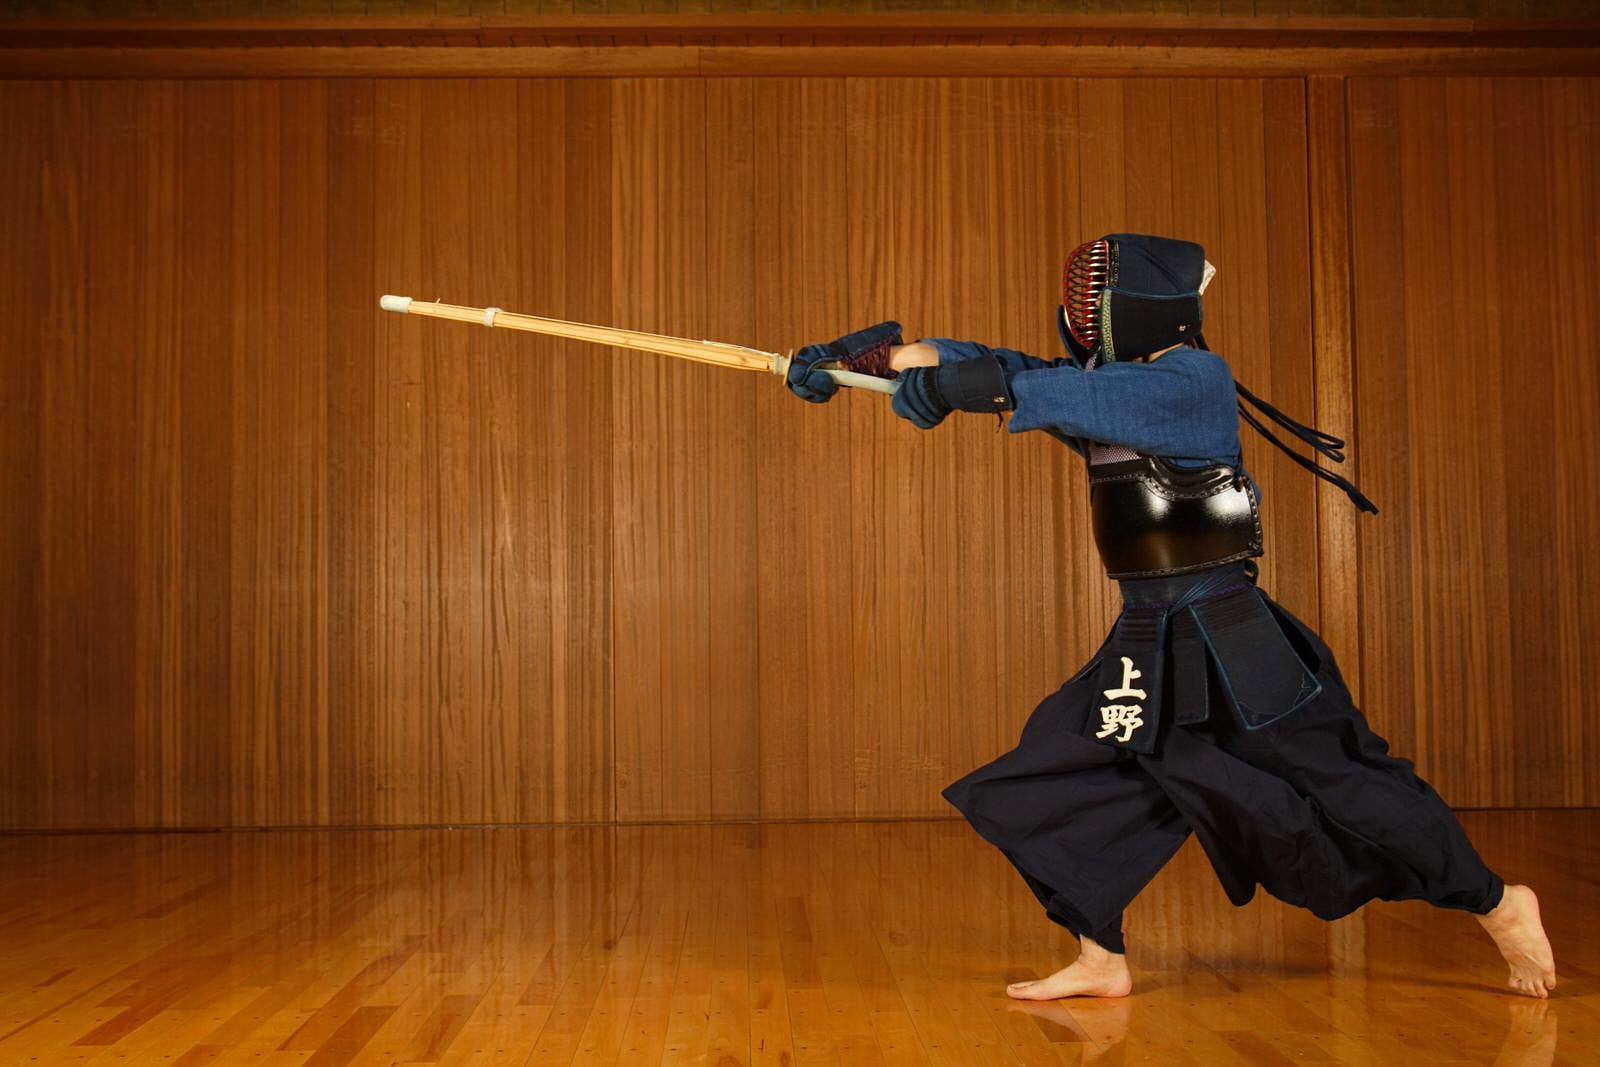 A person dressed in full kendo gear has a fighting stance and holds out the wooden sword